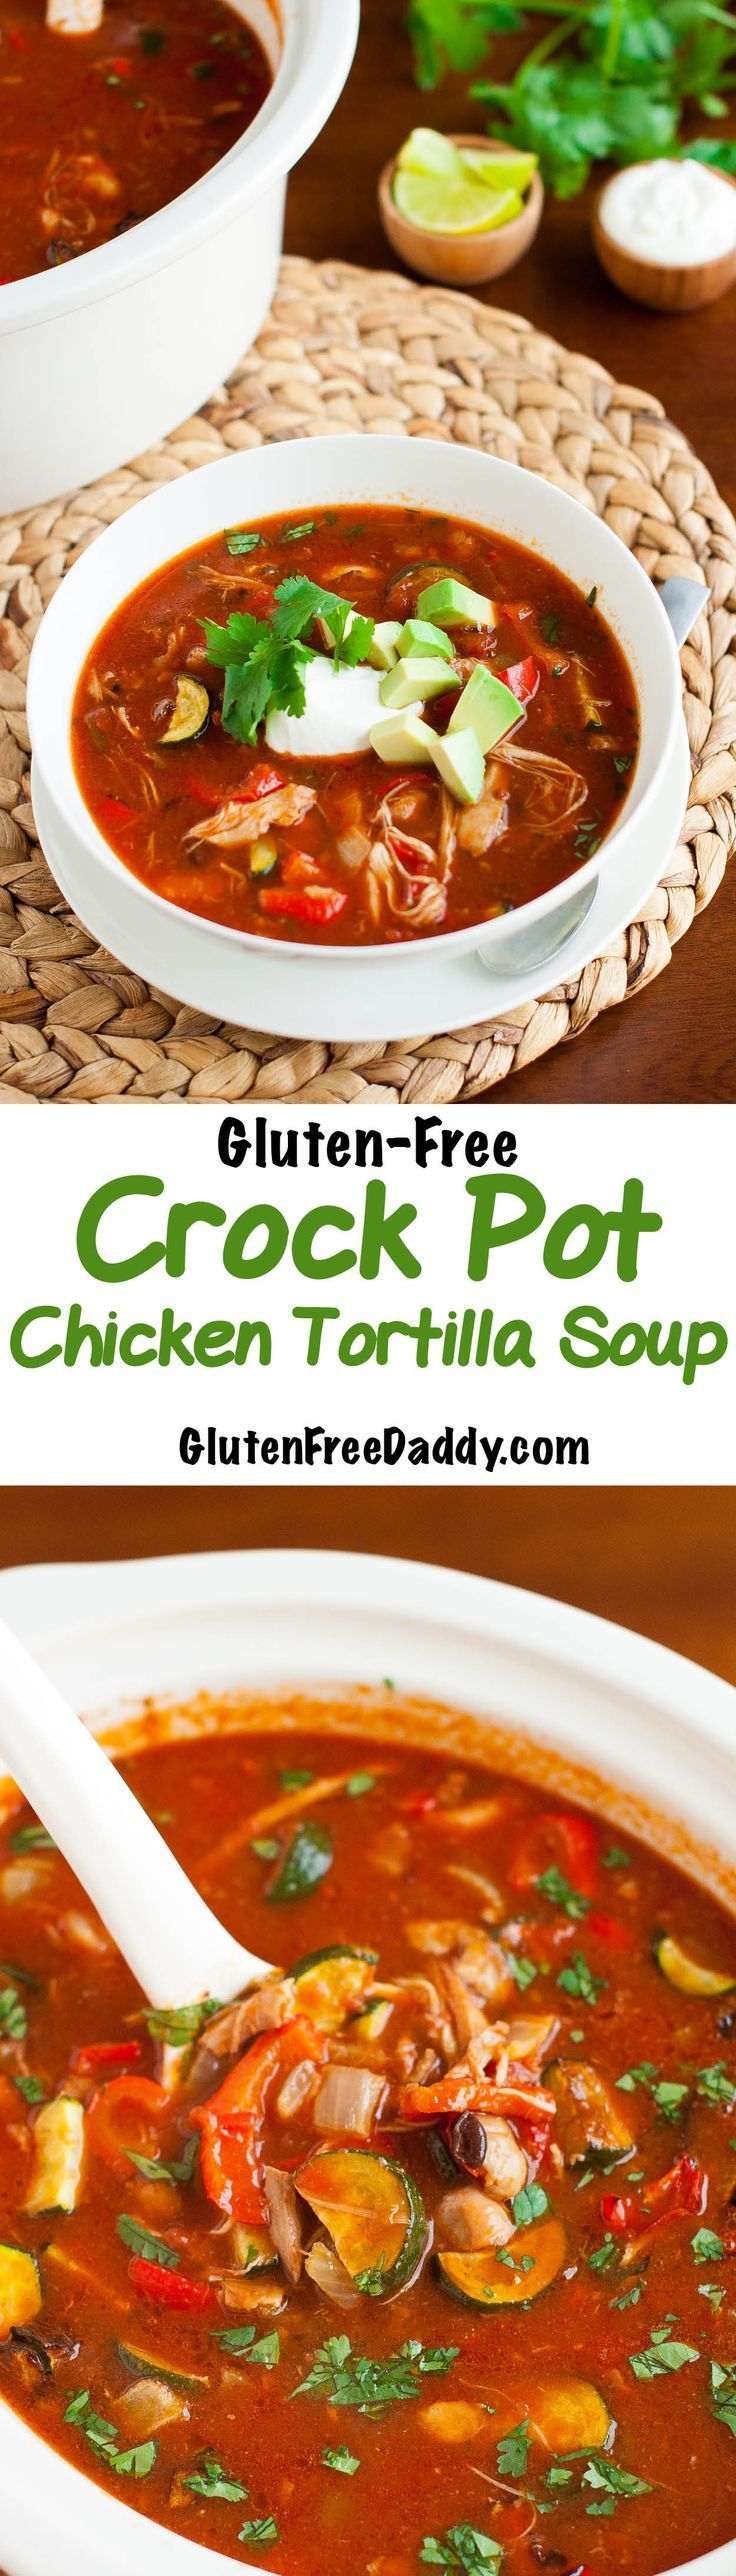 Gluten-Free Crock Pot Chicken Tortilla Soup Recipe- cook the base in a crock pot all day then before serving add roasted vegetables.